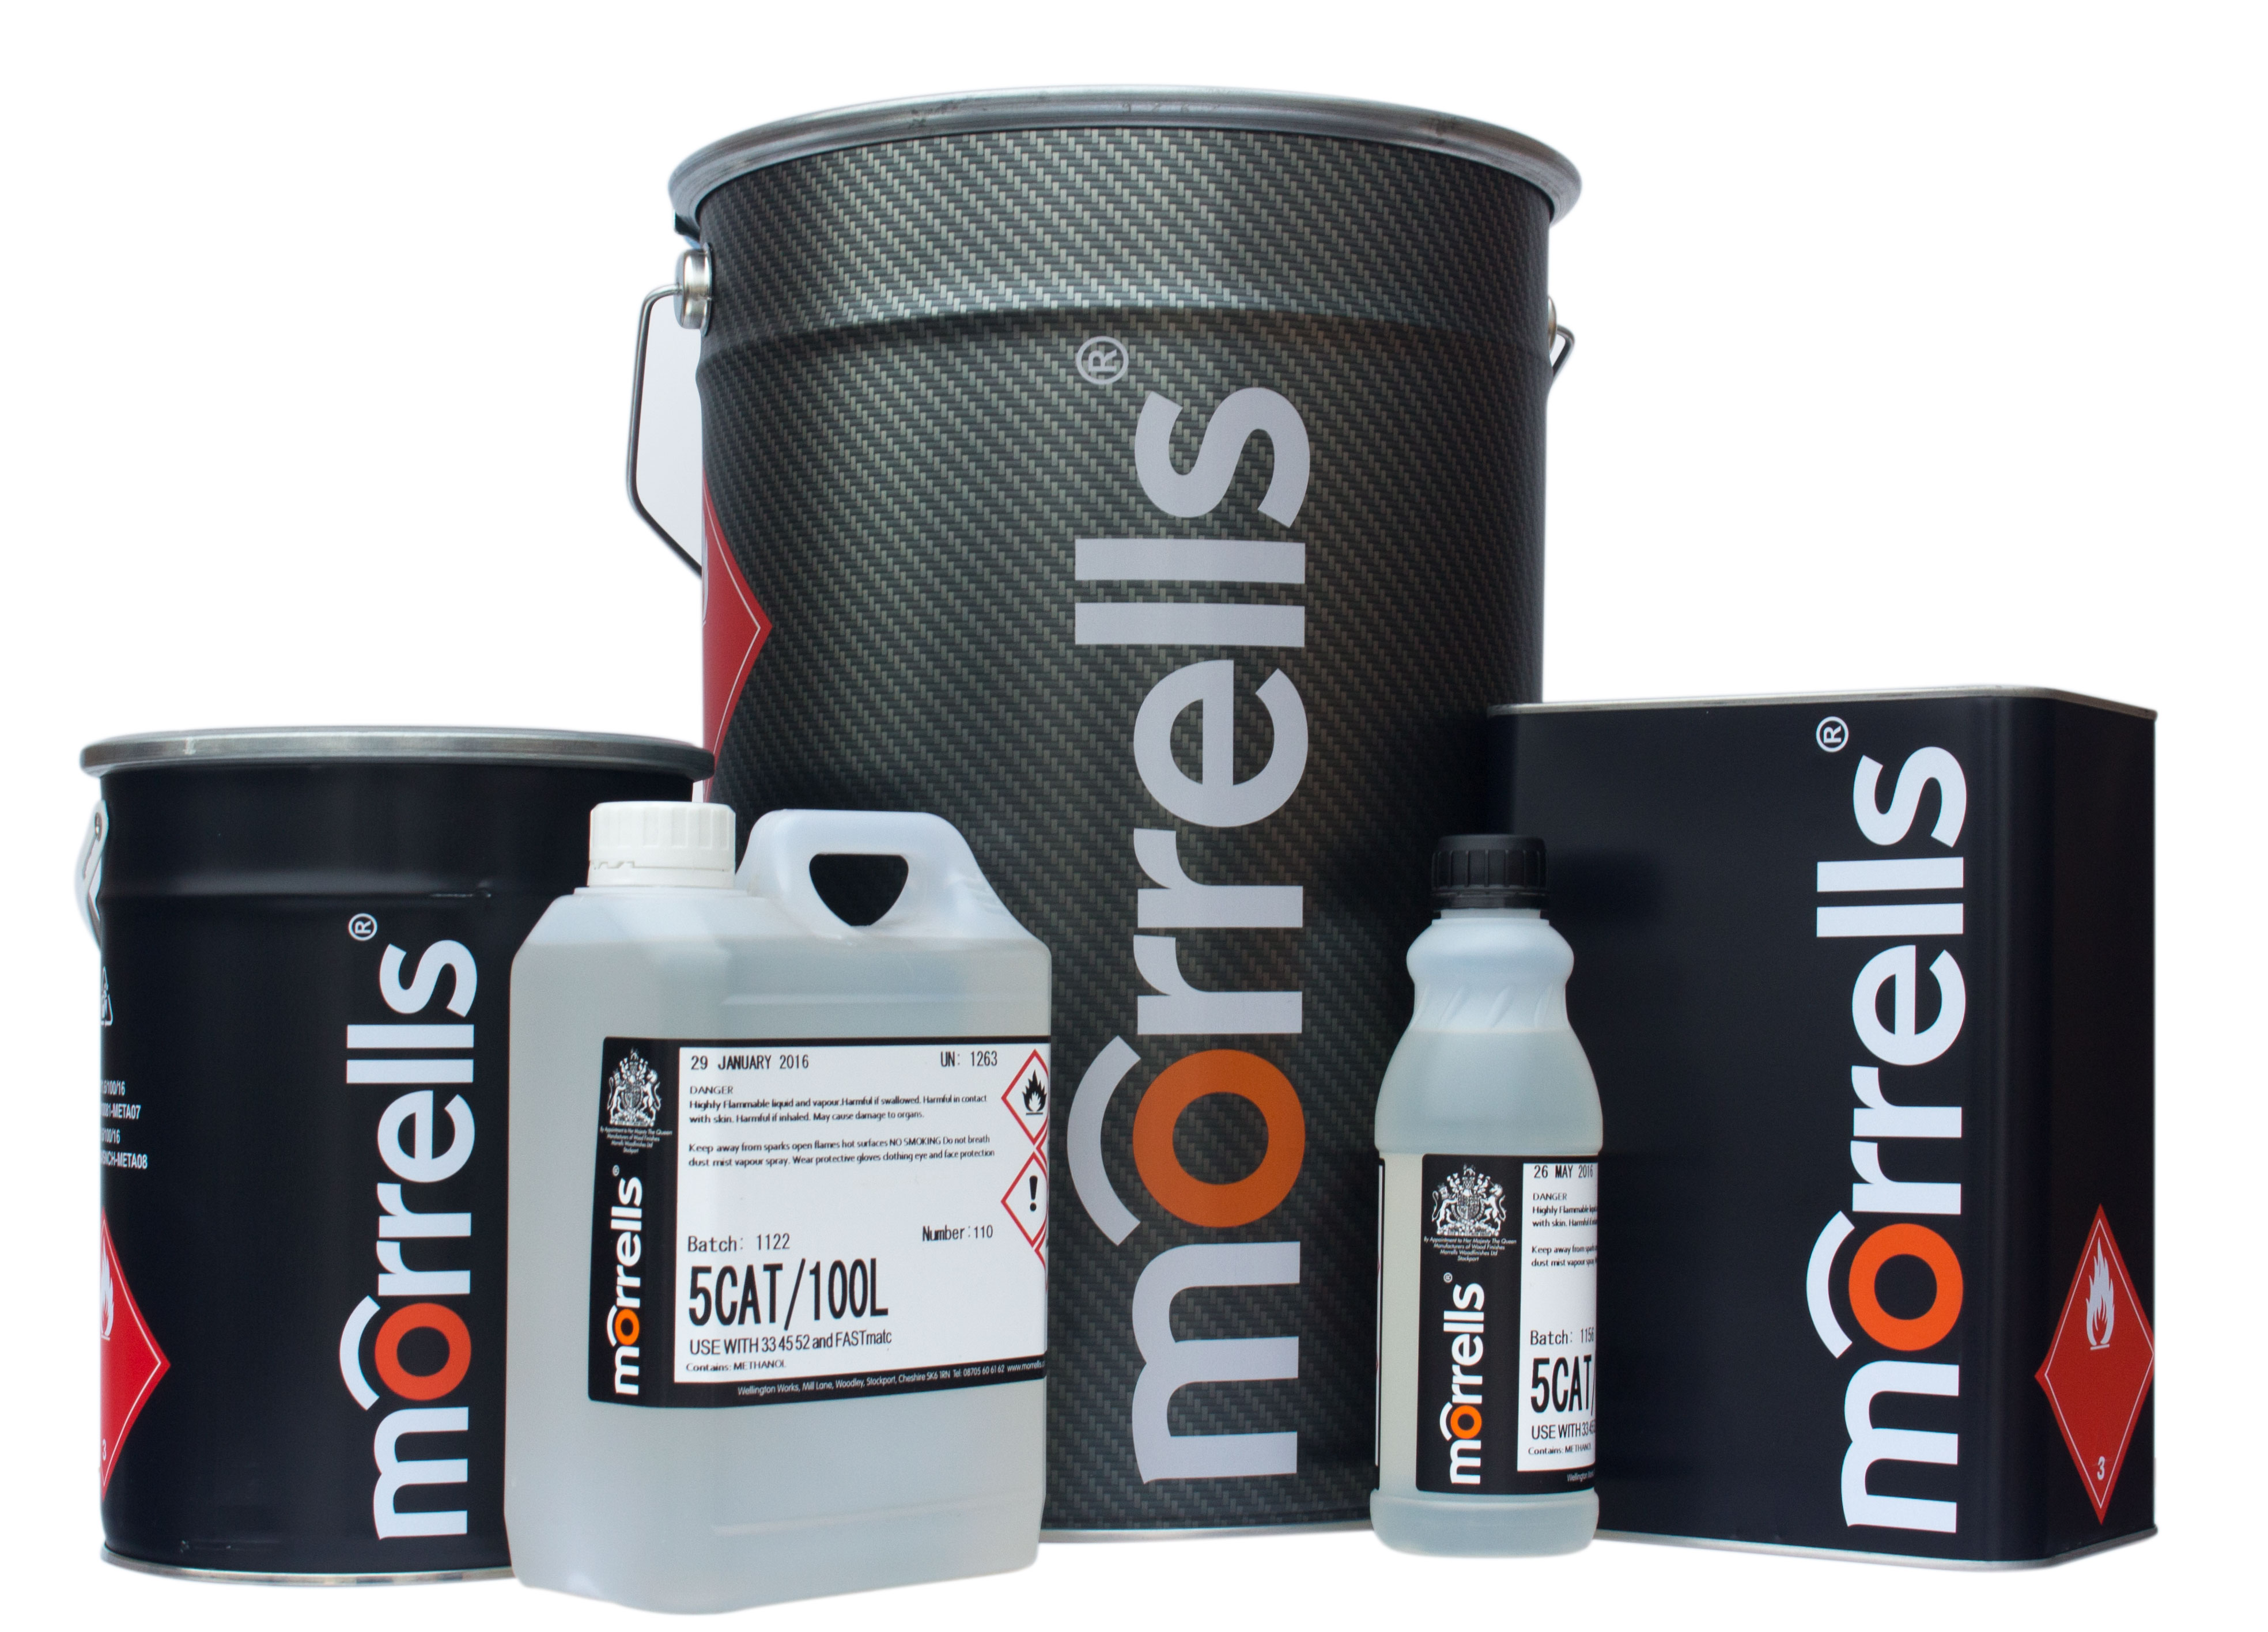 ... Morrells Are The Largest Manufacturer Of High Performance Interior Wood  Finishes In The UK, Delivering Next Day To Furniture Joinery And ...